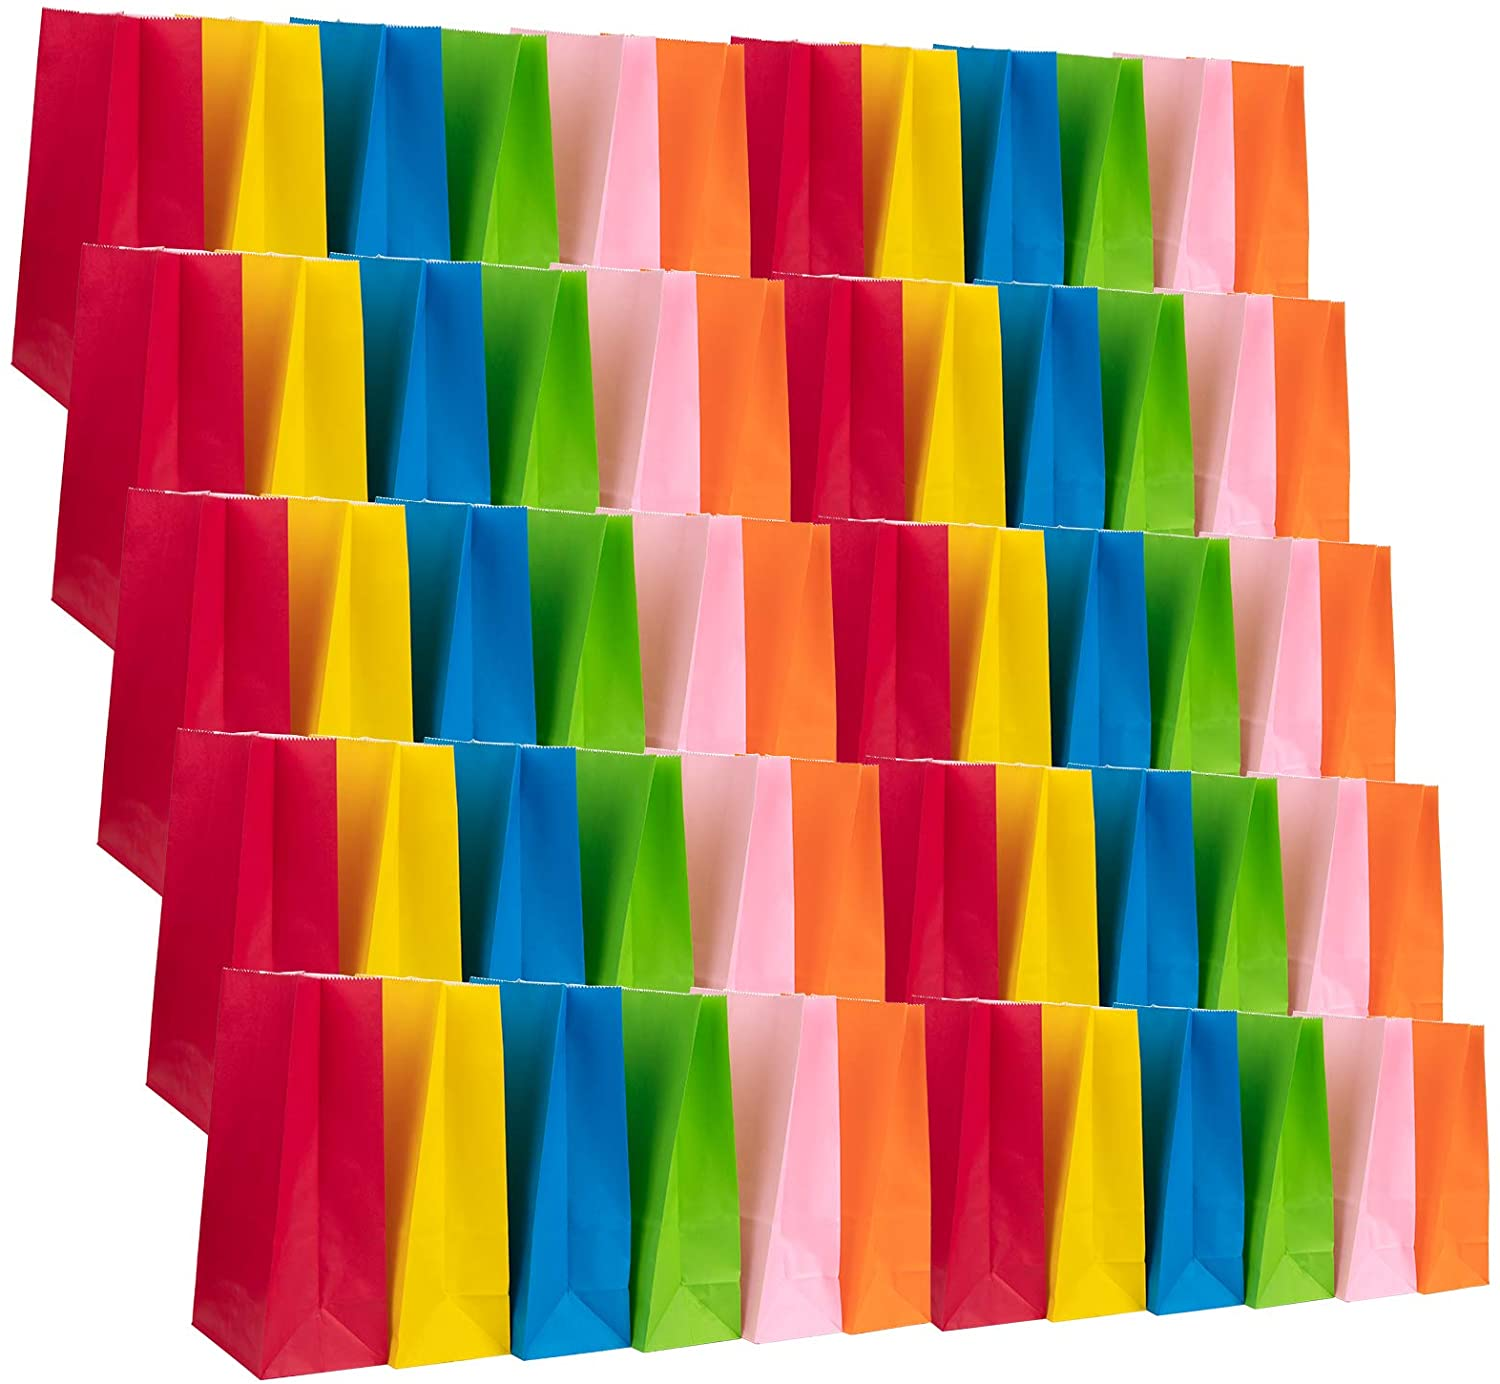 Jucoan 60 Pack Paper Party Favor Bags, Assorted Color Goodies Bags for Cookies, Candy Buffet